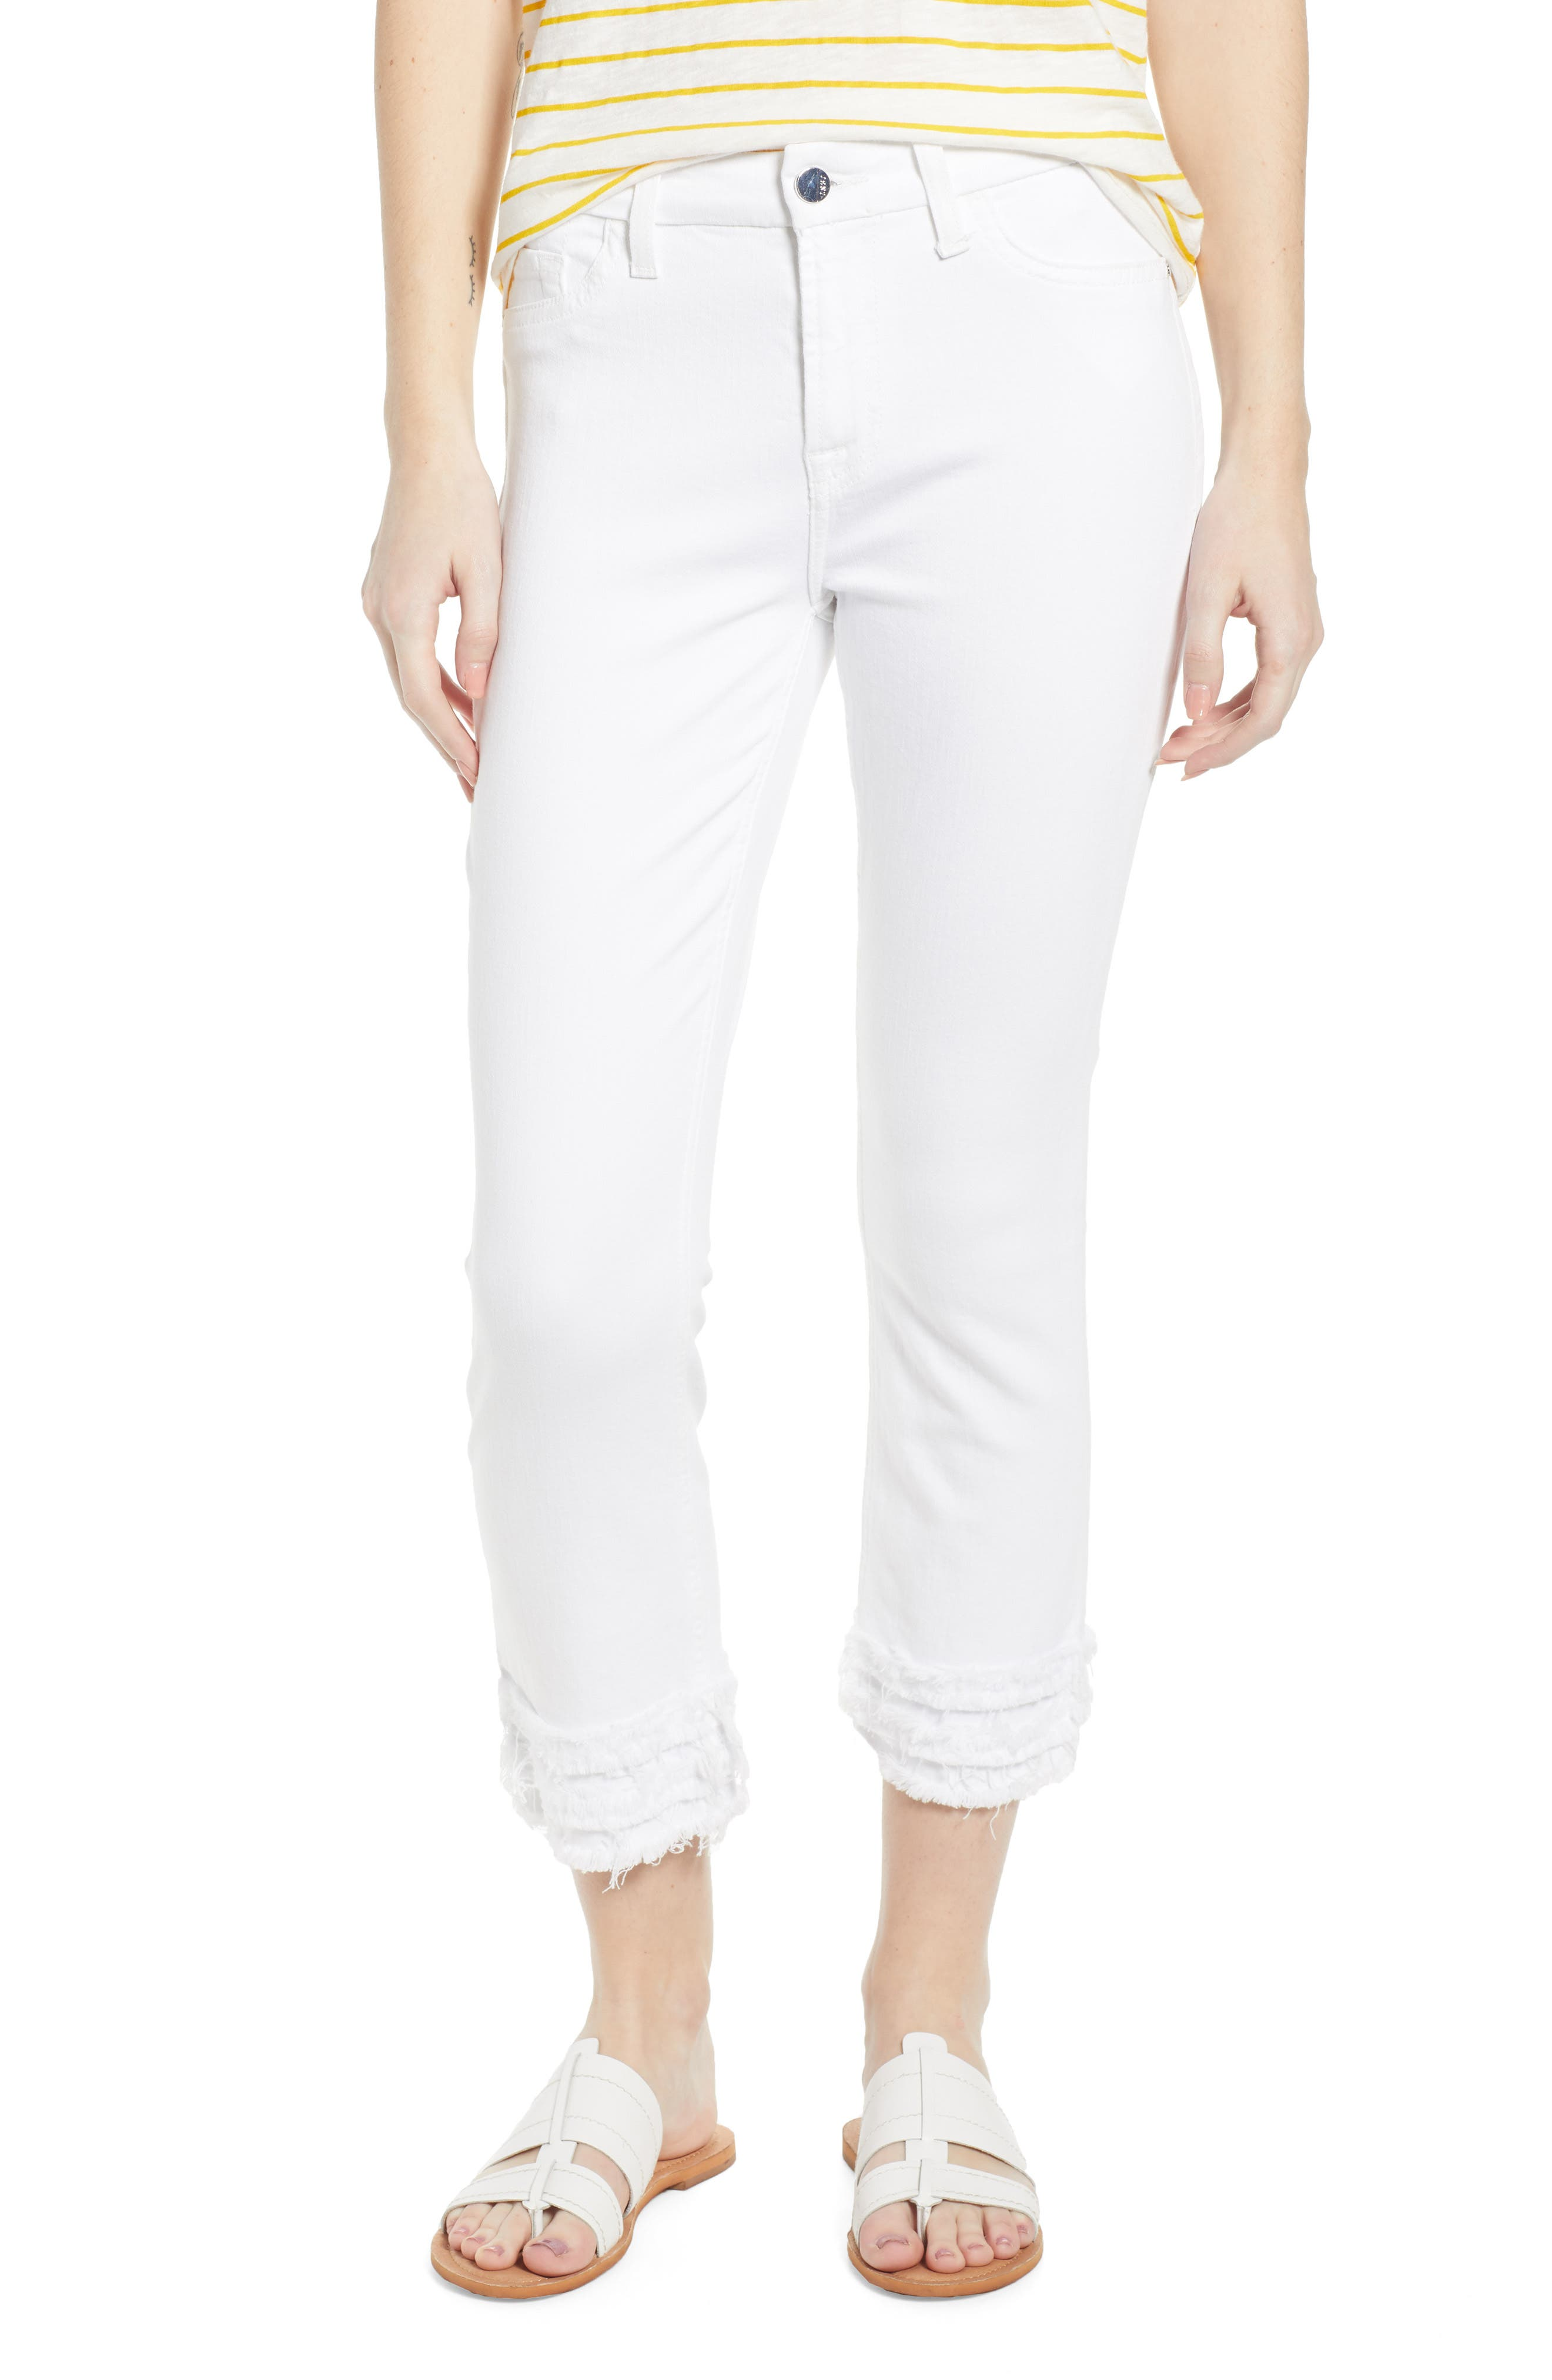 JEN7 BY 7 FOR ALL MANKIND, Fringe Hem Crop Jeans, Main thumbnail 1, color, WHITE FASHION